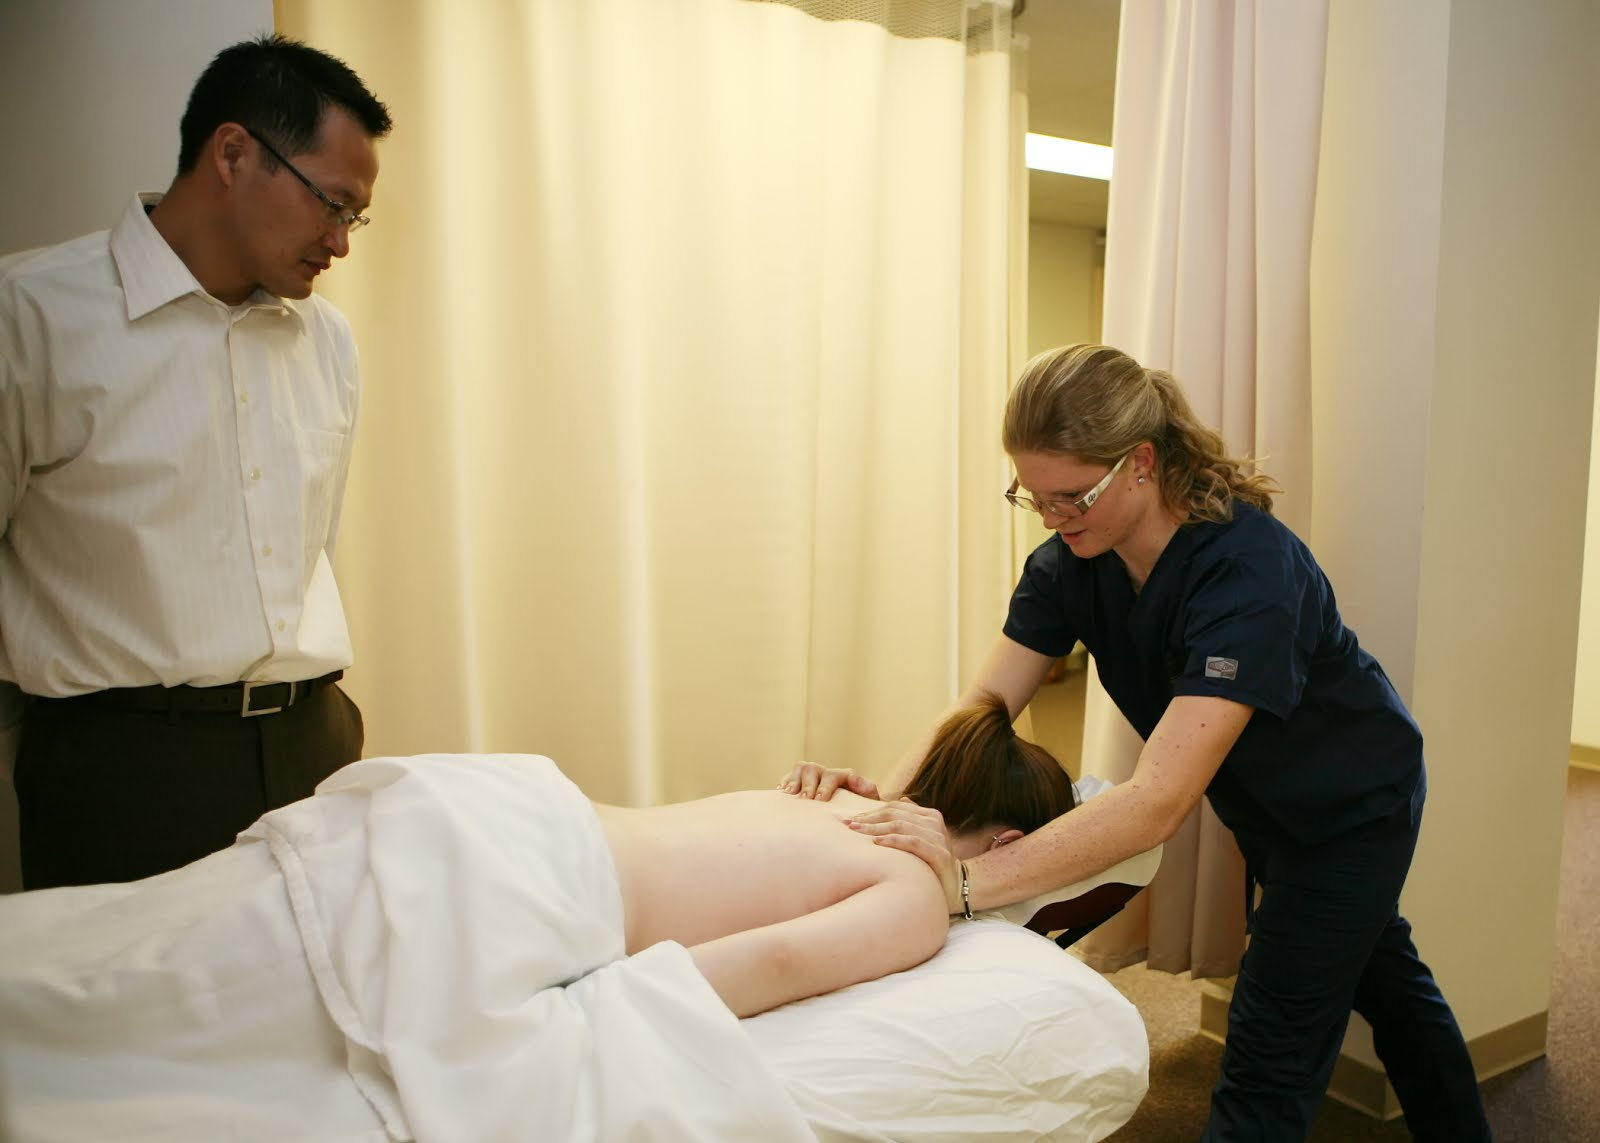 Massage Therapy One of the Fastest Growing Jobs in the US